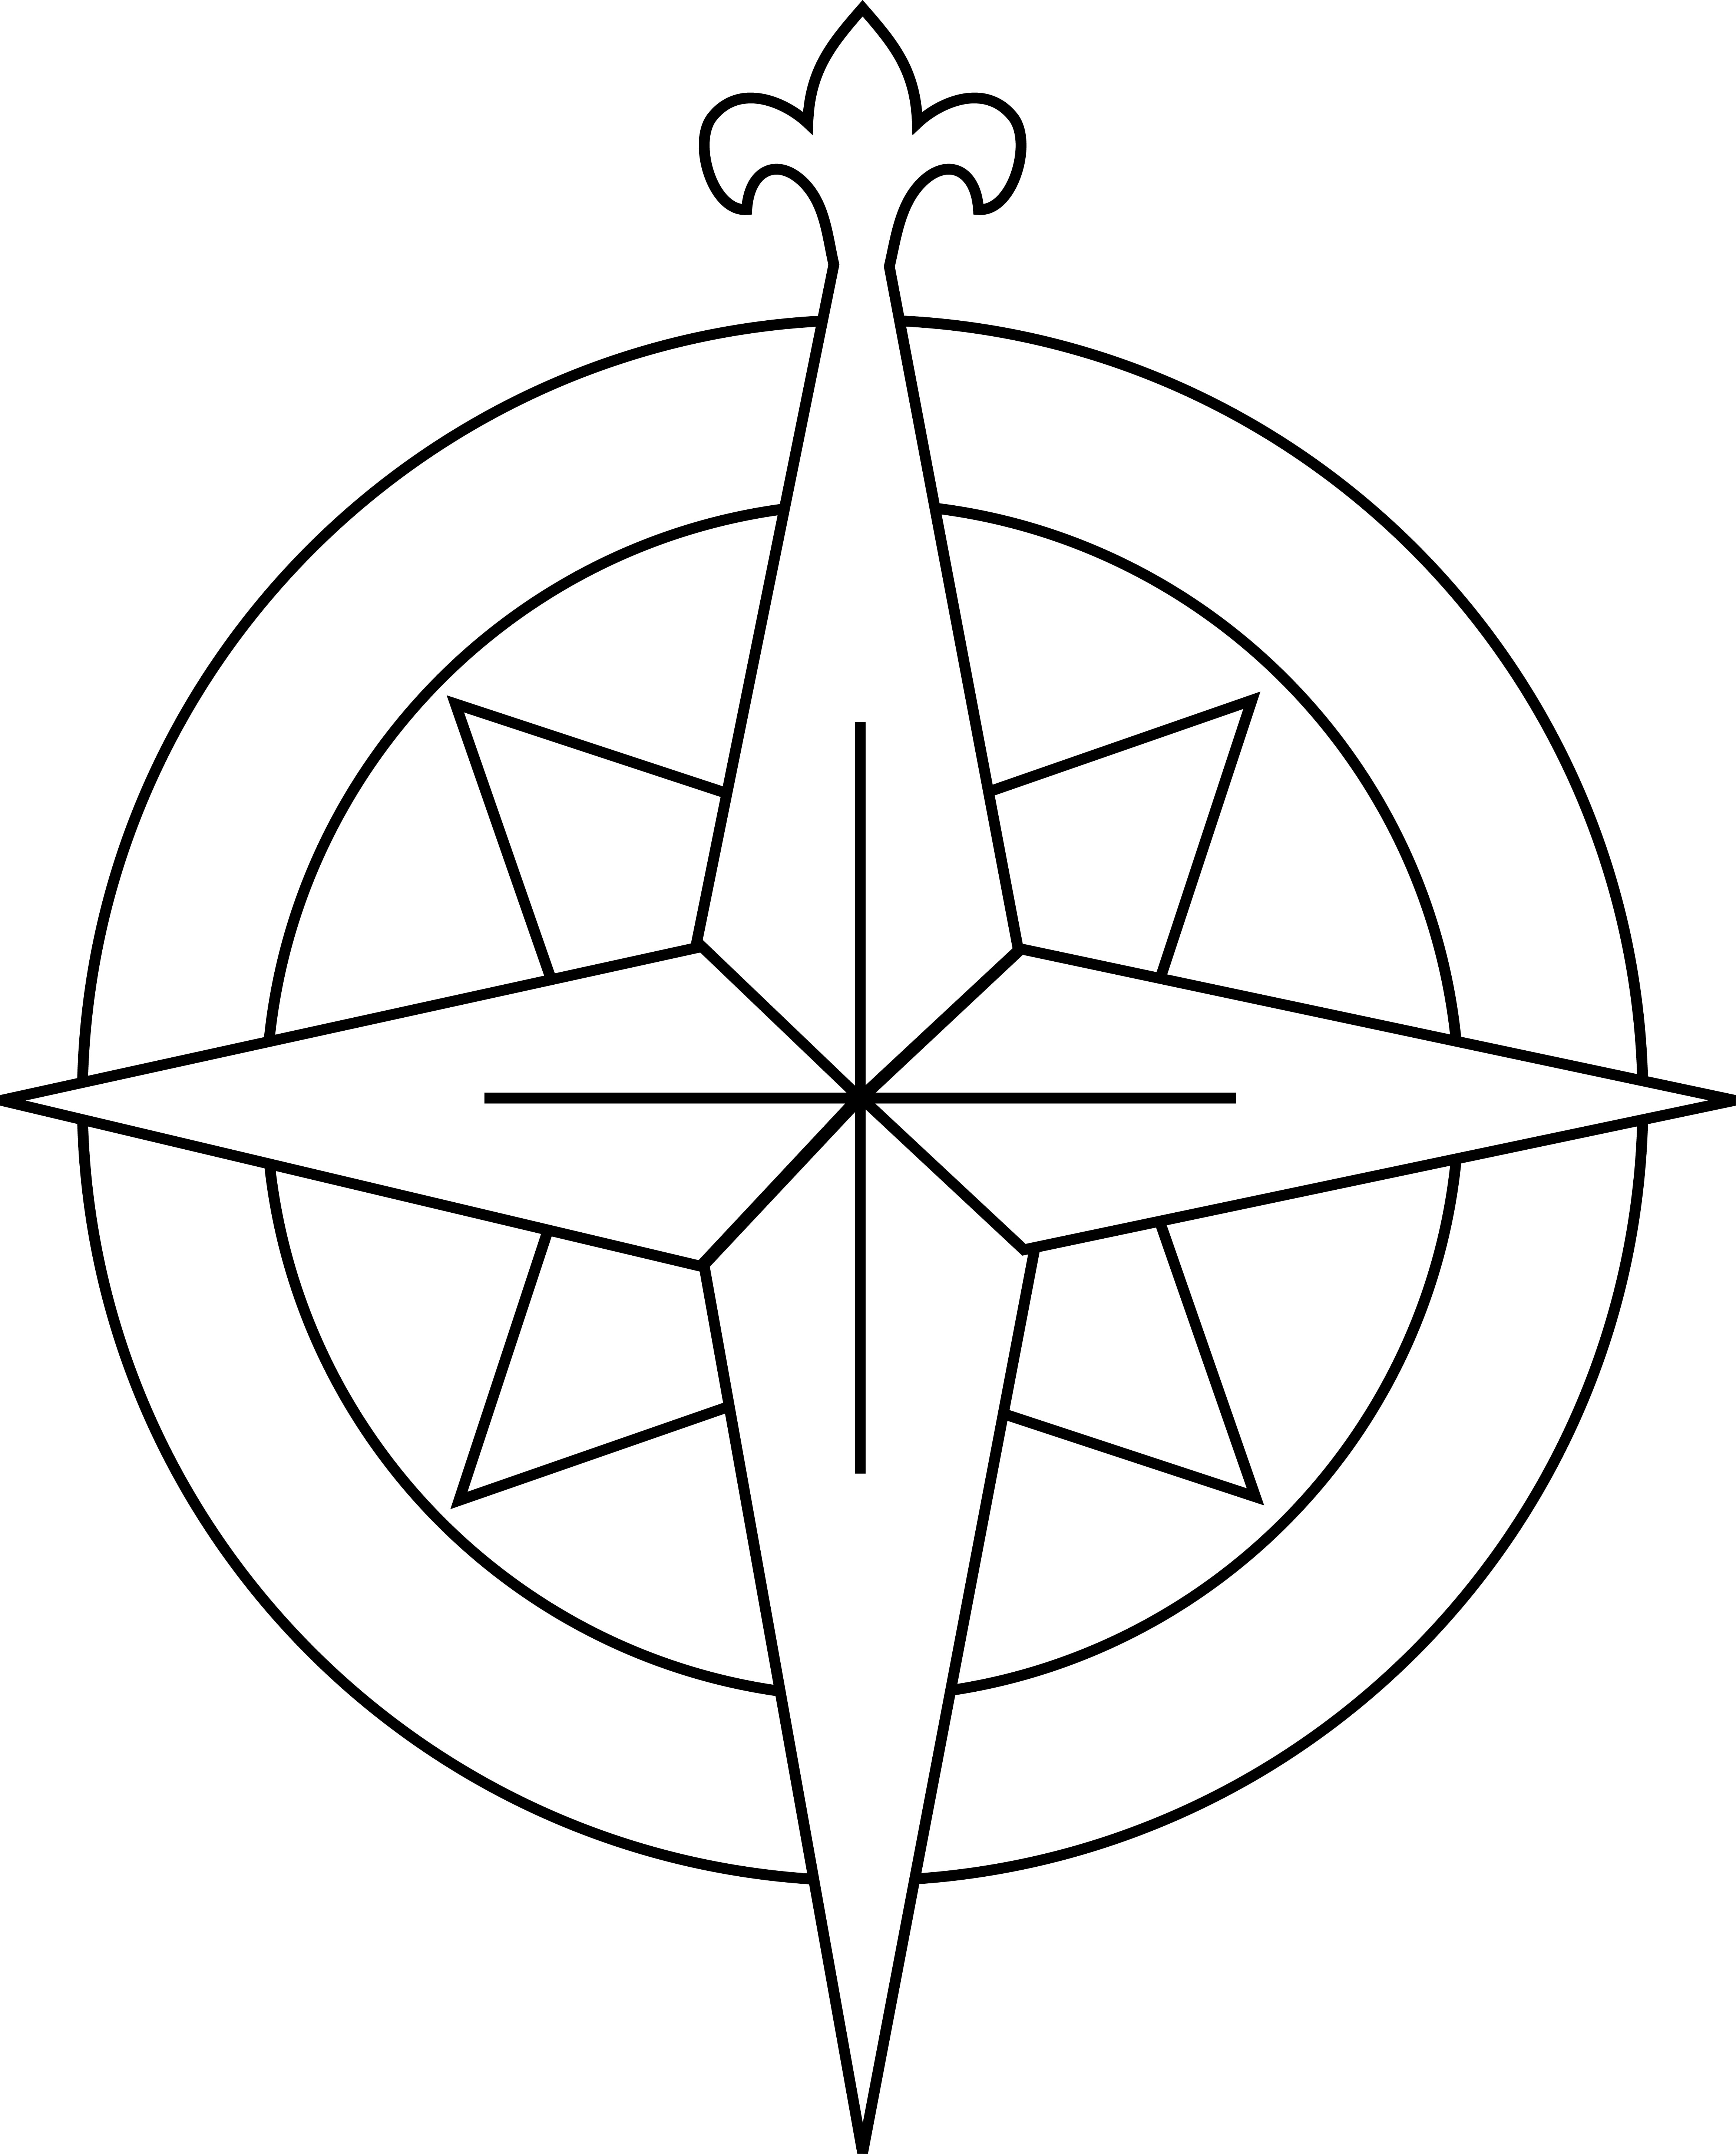 Compass Rose Black And White